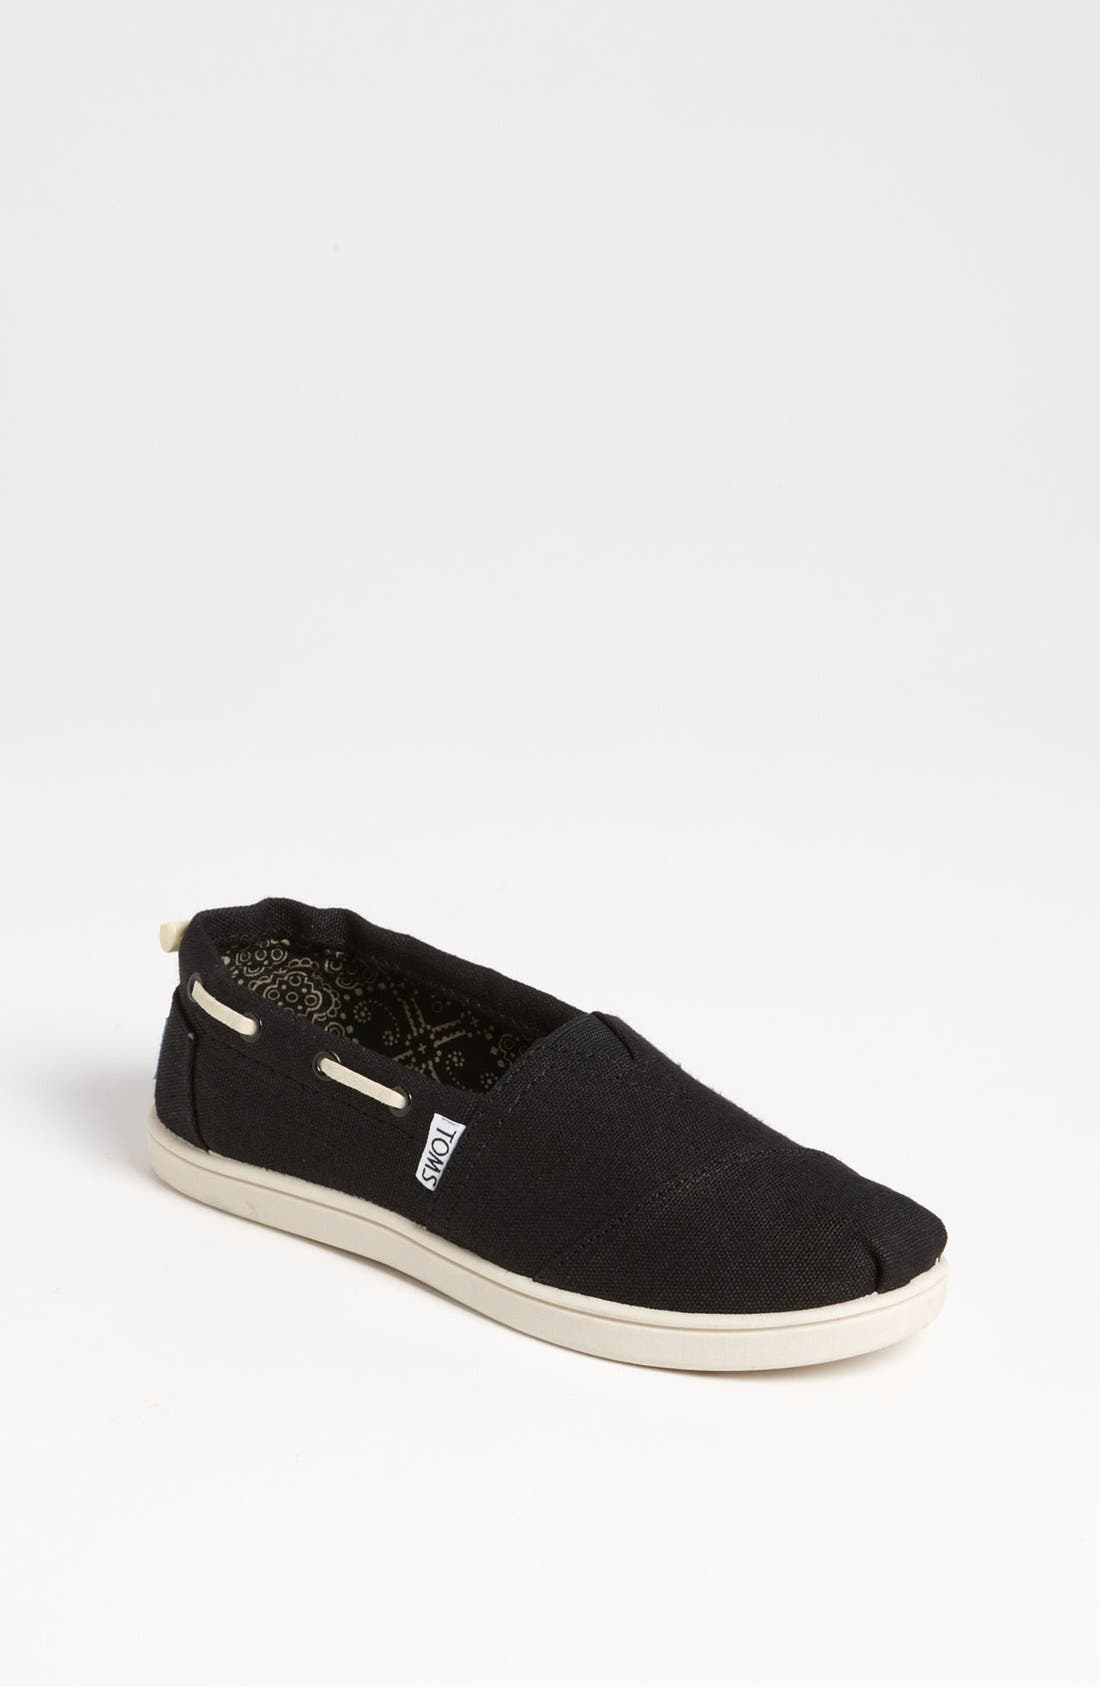 Alternate Image 1 Selected - TOMS 'Bimini - Youth' Slip-On (Toddler, Little Kid & Big Kid)